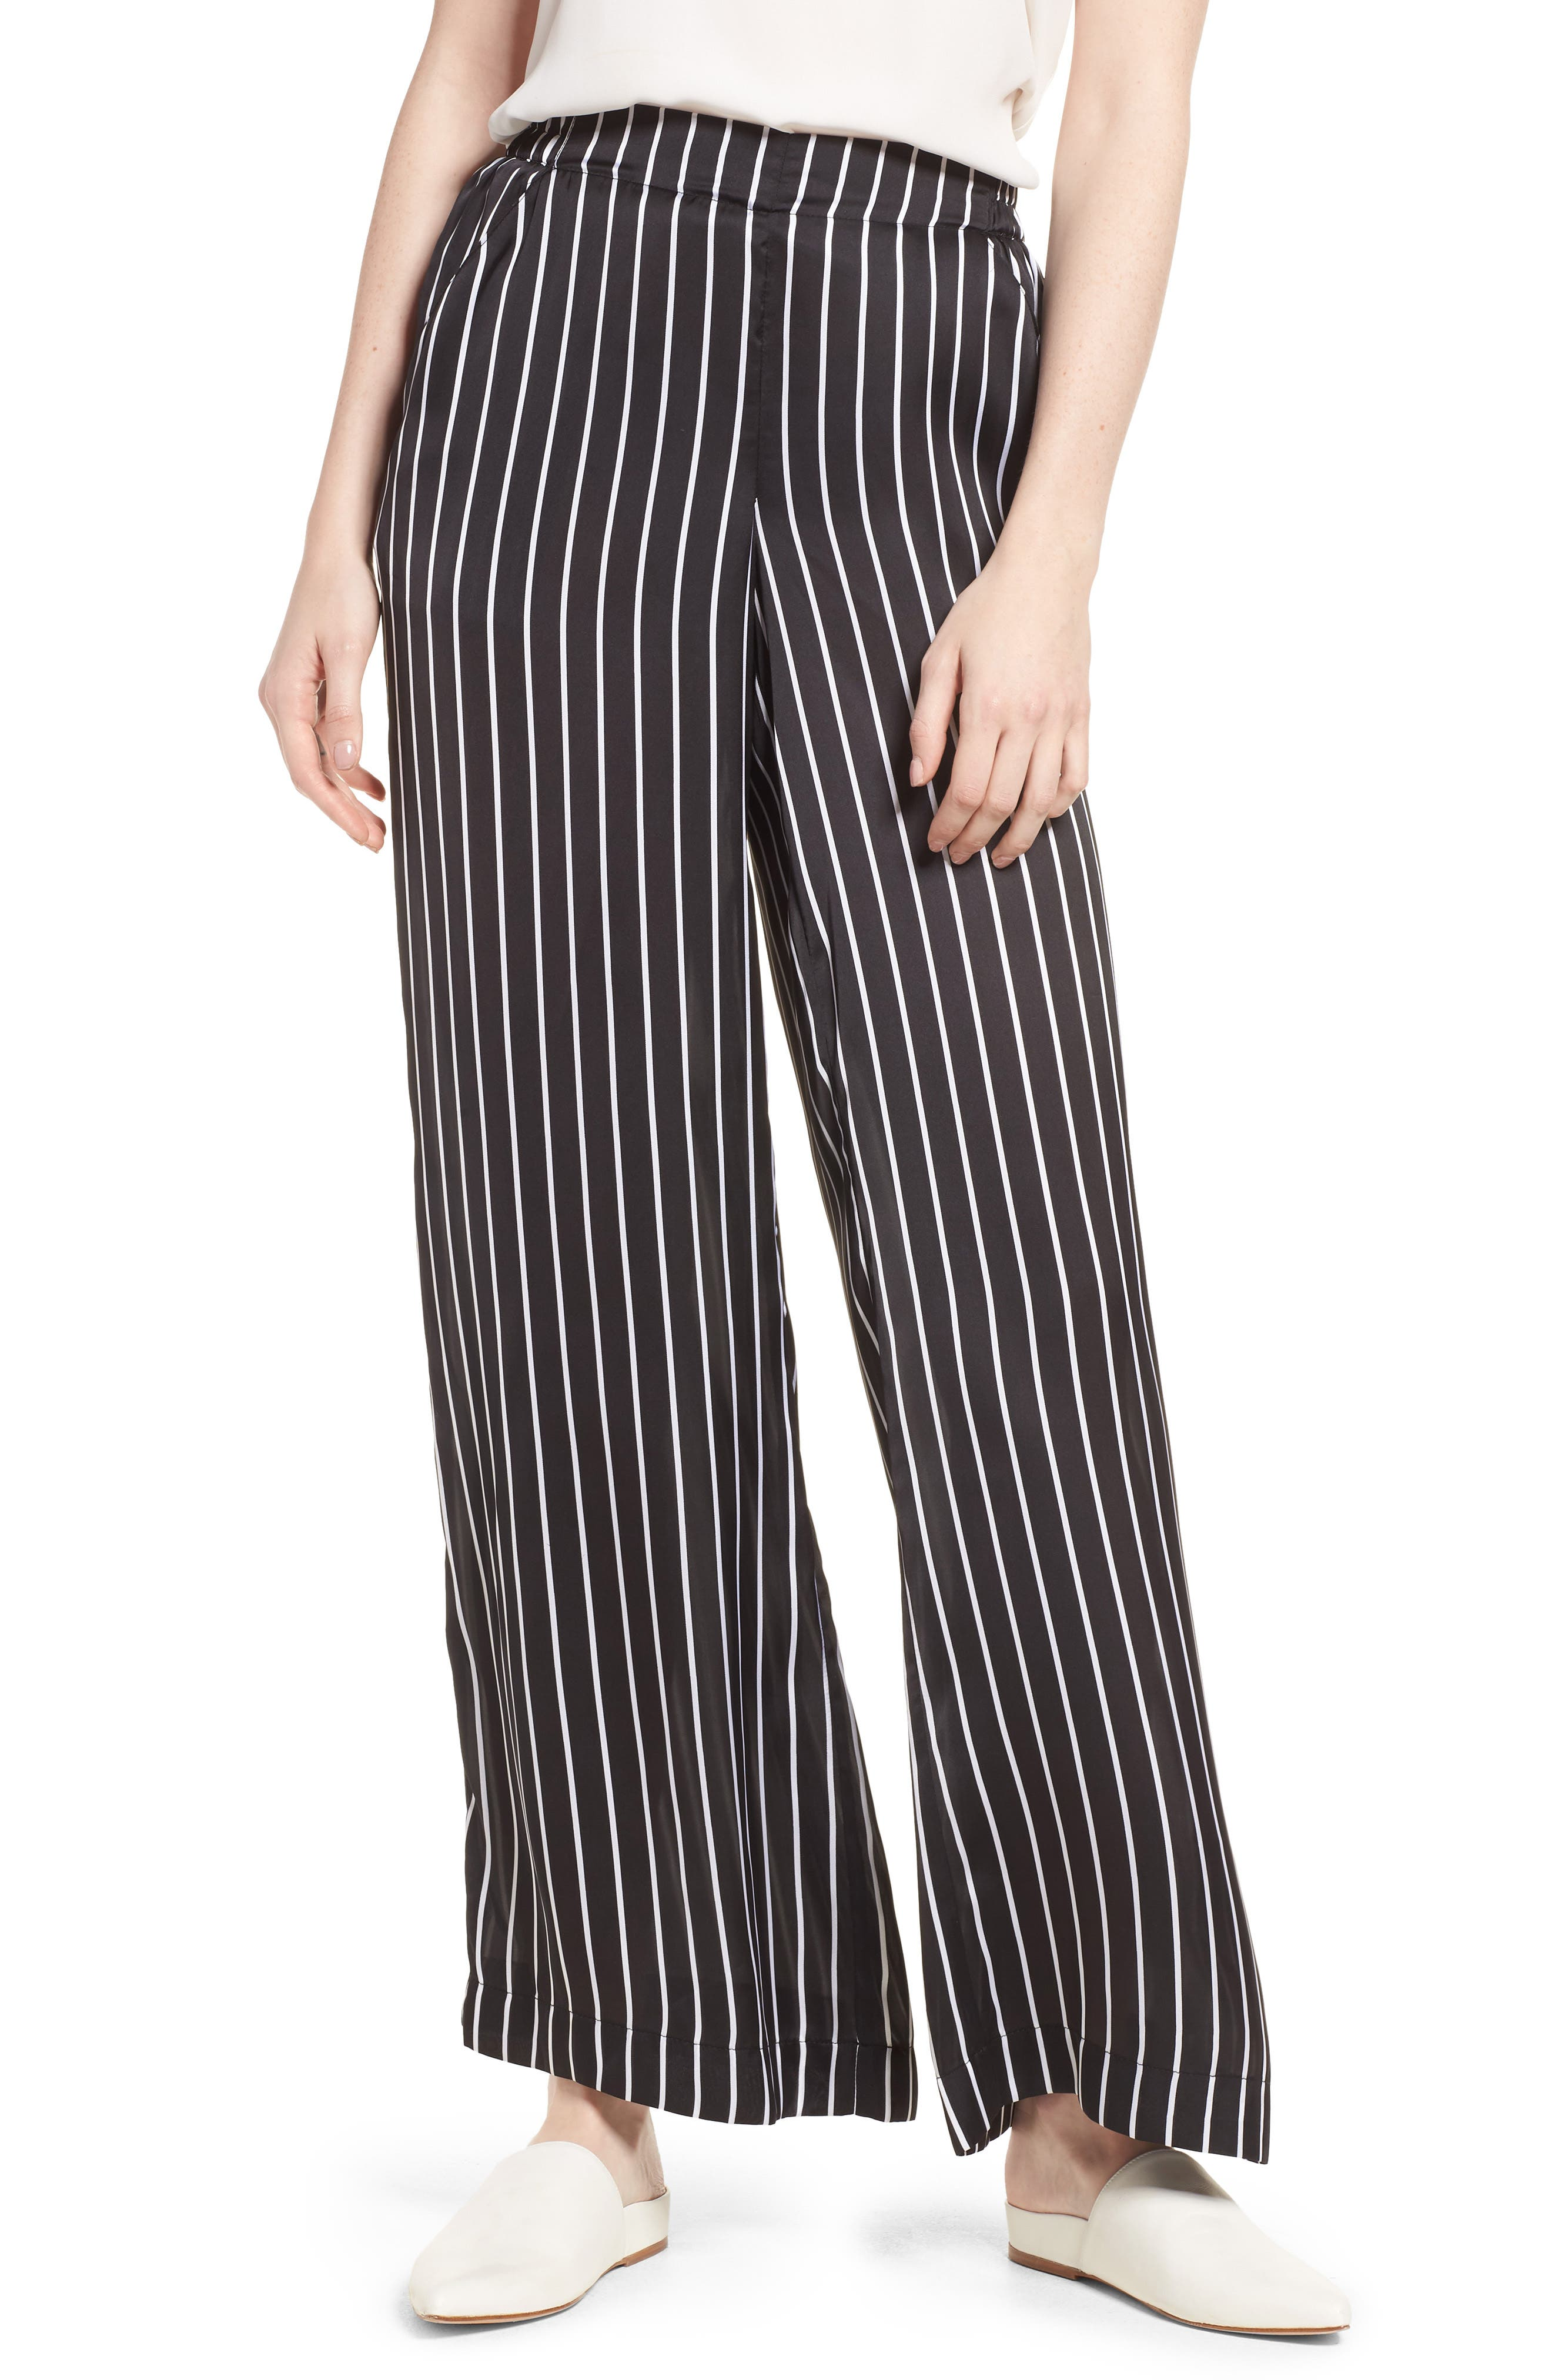 Kenneth Cole Wide Leg Pants,                             Main thumbnail 1, color,                             STREET STRIPE BLACK